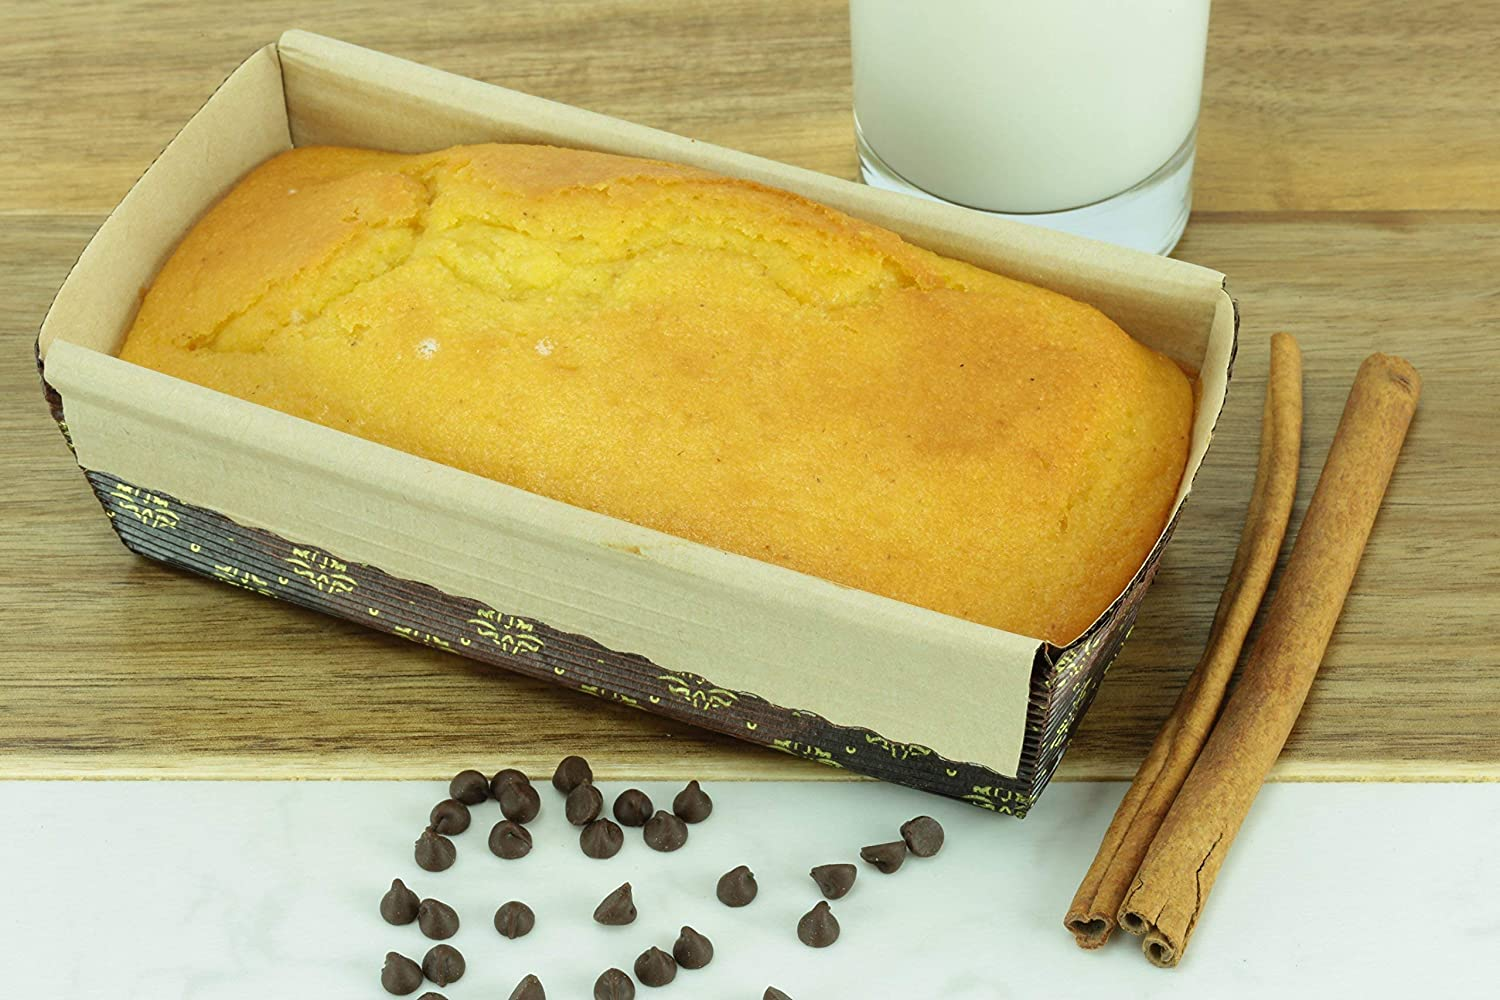 Nonstick Premium Paper Baking Loaf Pan Banana Bread Set of 12 for Chocolate Cake Disposable By Ecobake